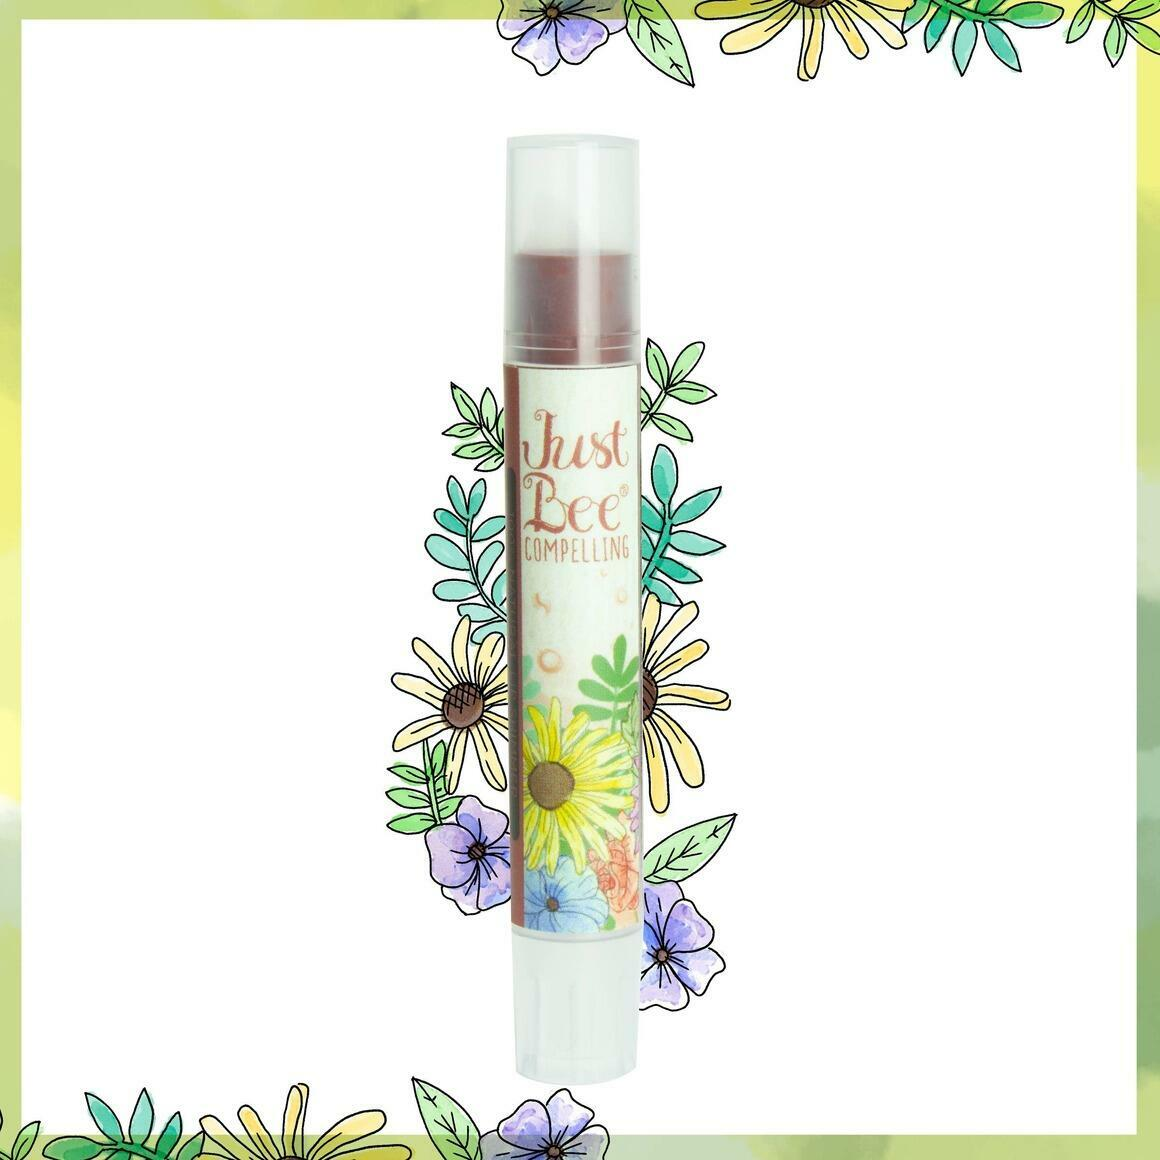 Just Bee Compelling - Lip Shimmer - Refill | Trada Marketplace